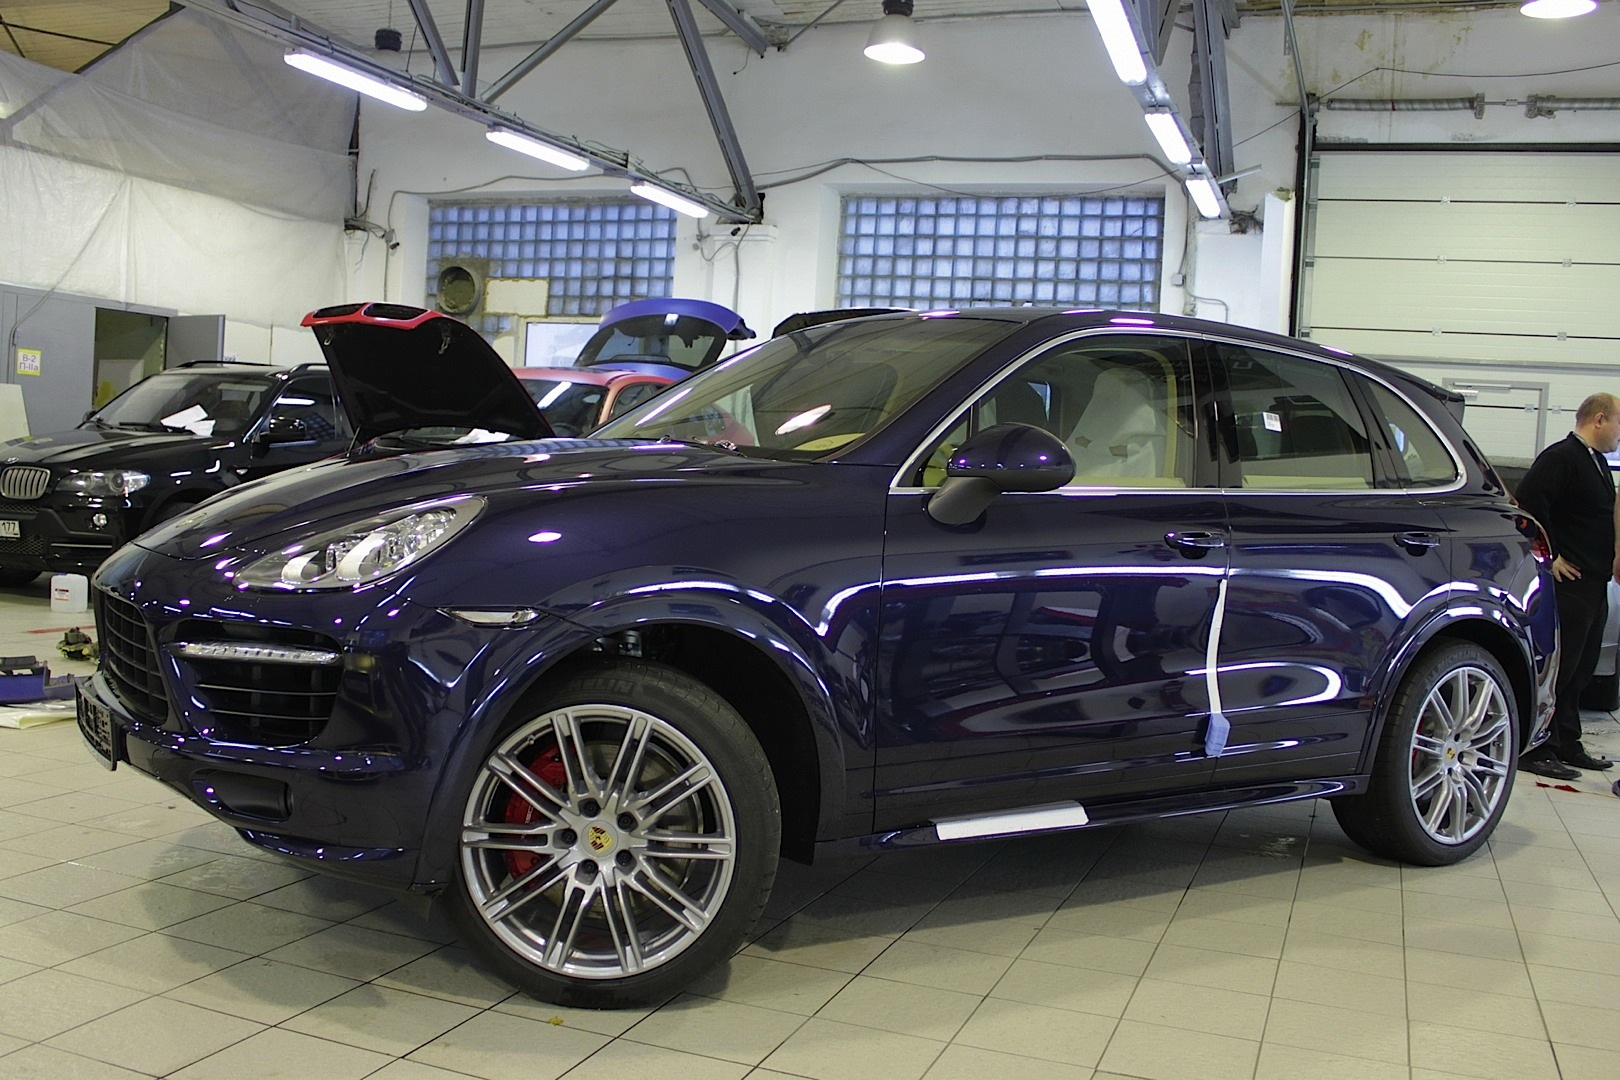 Porsche Cayenne Blue Chrome Autoevolution